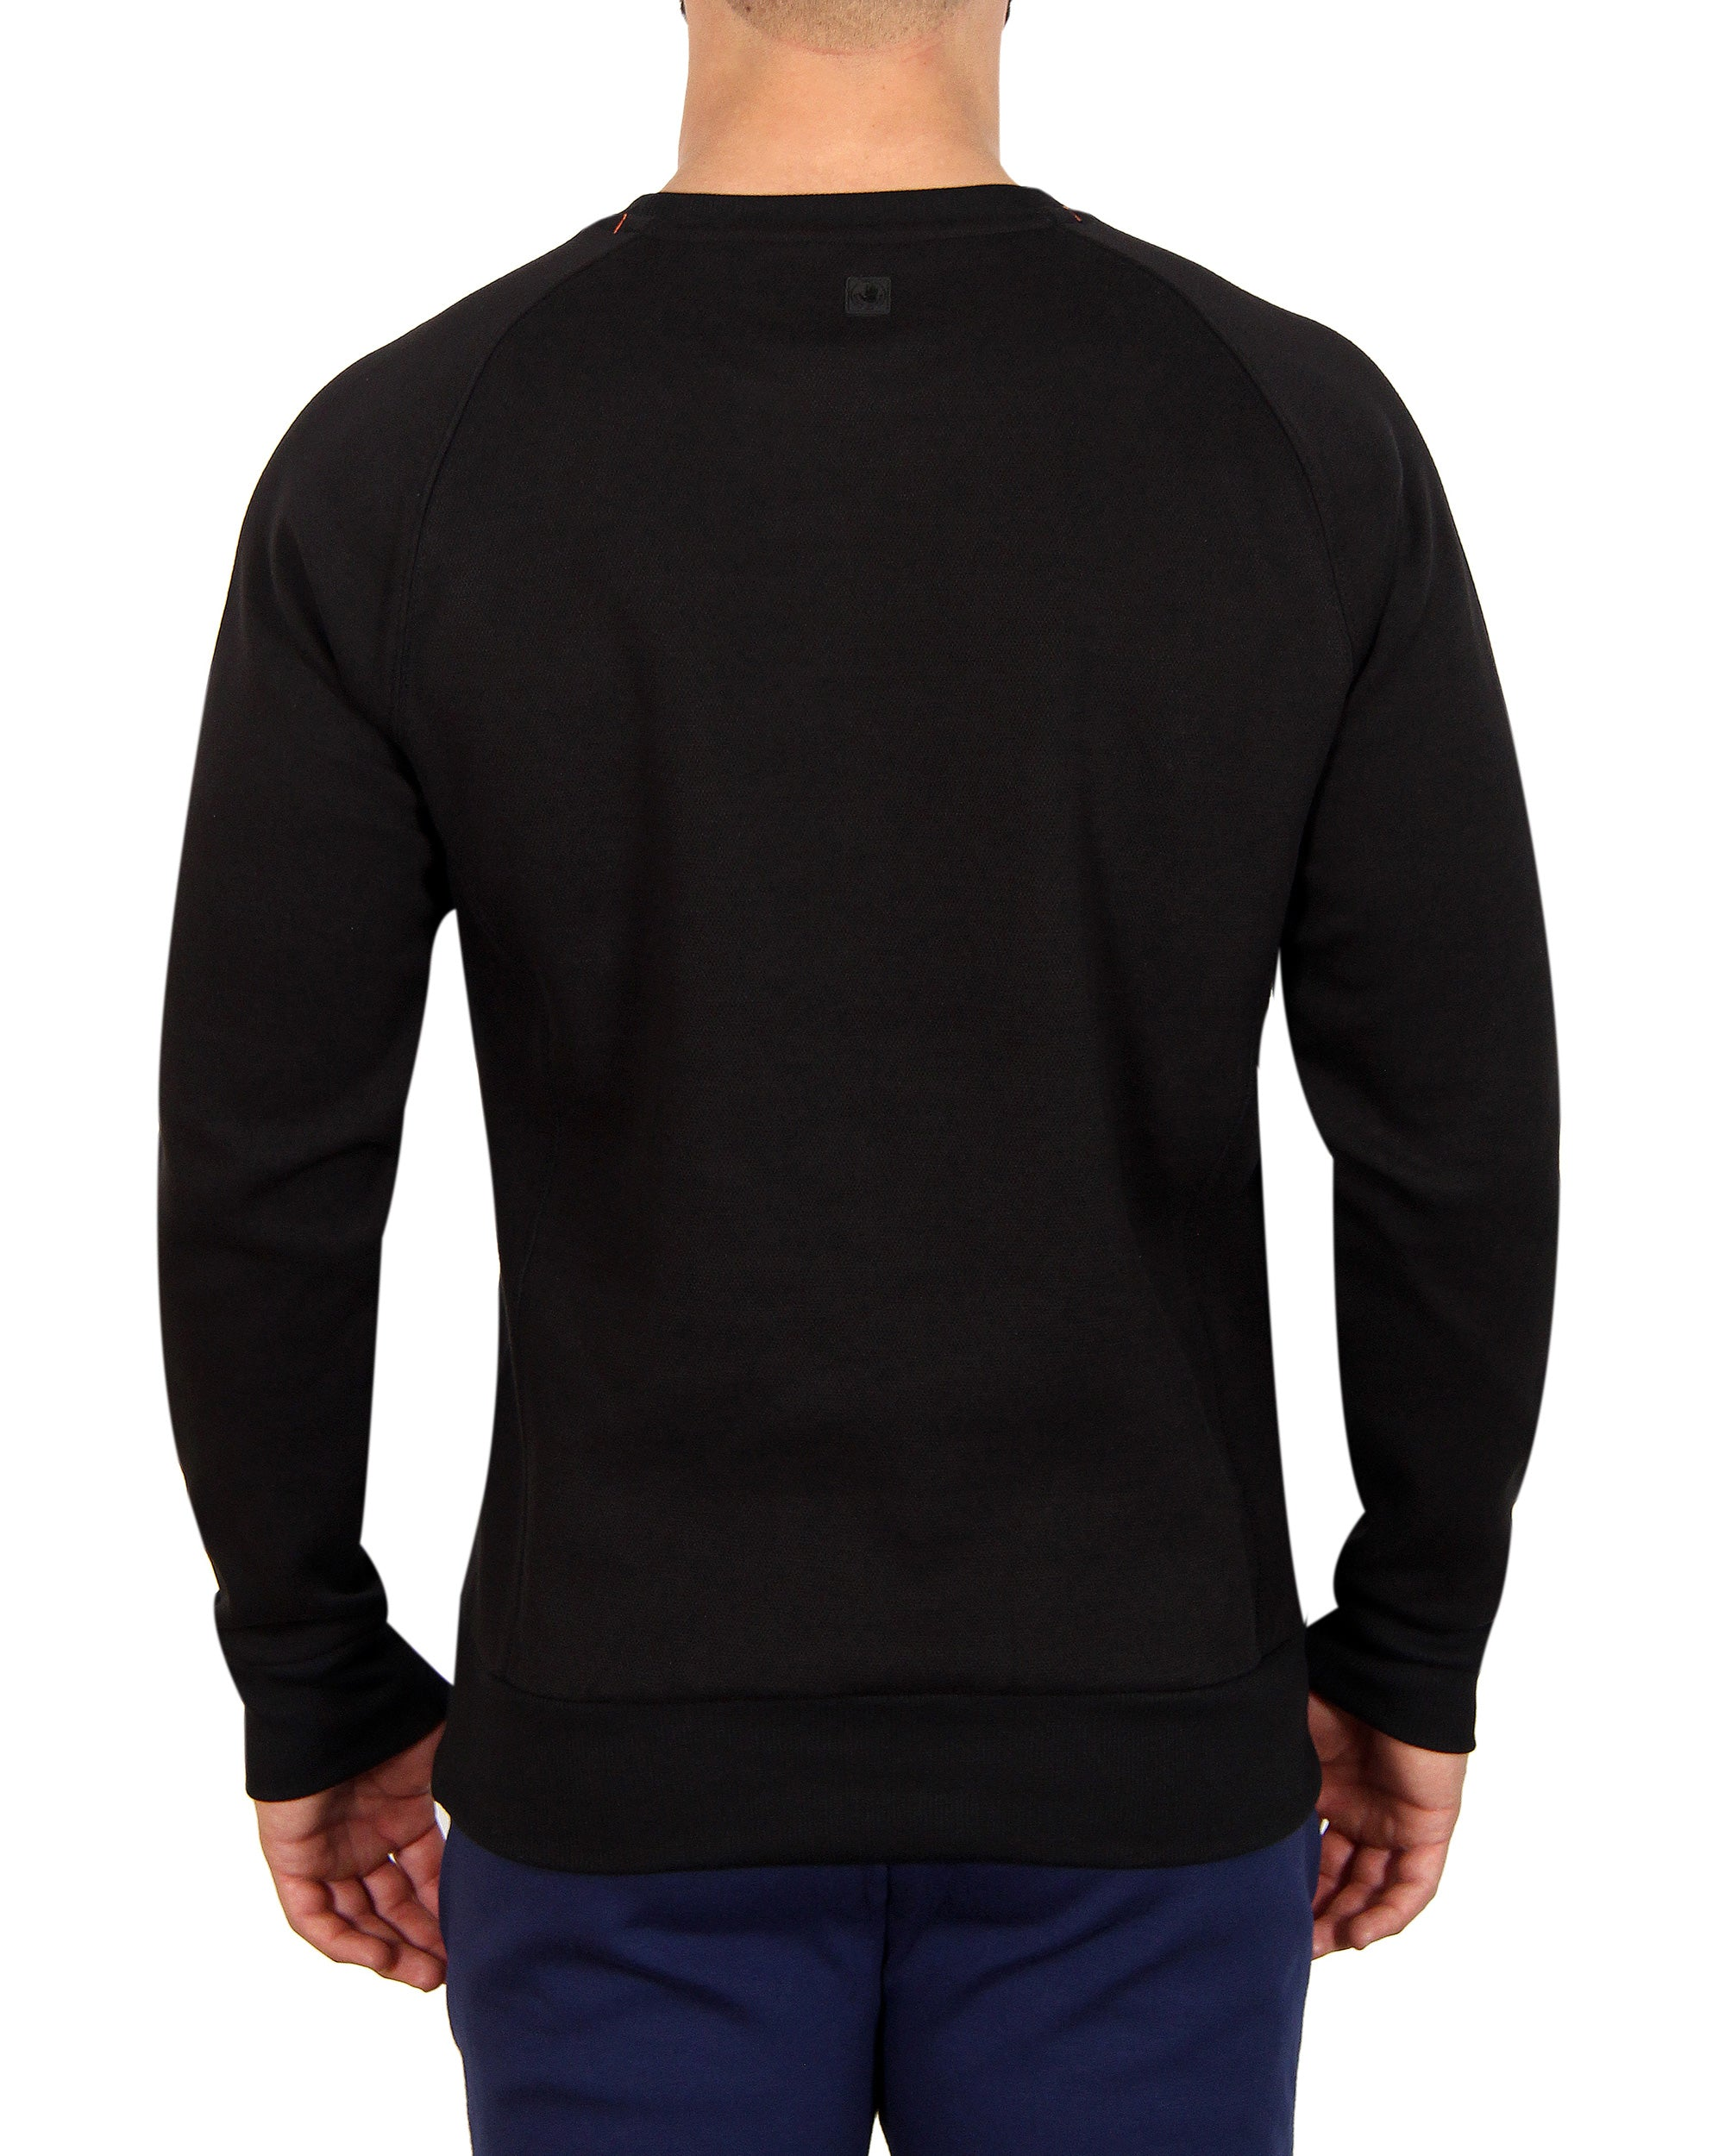 Men's Signature Crew Fleece - Black – Body Glove